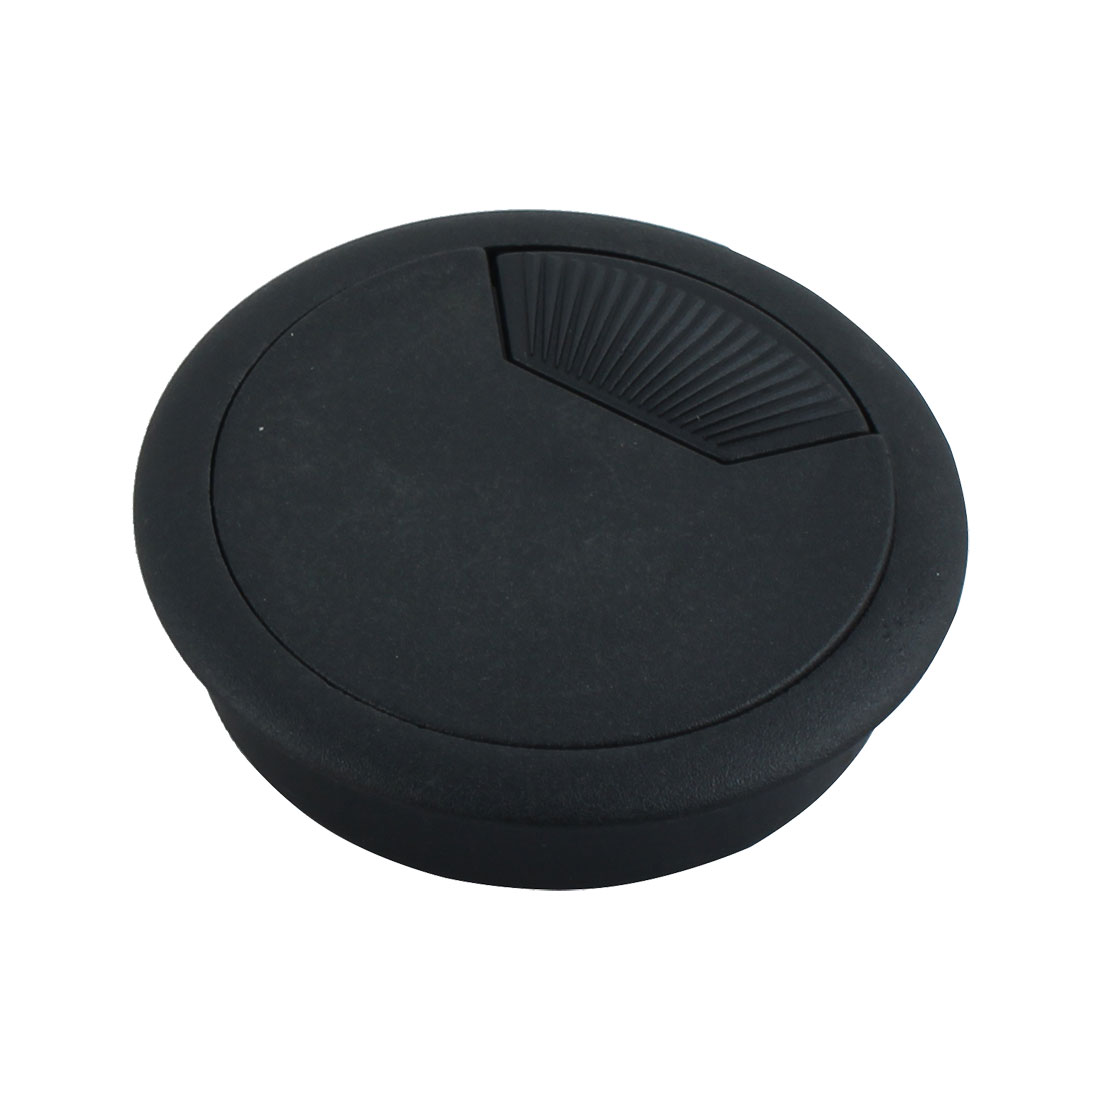 Desk Table Computer Plastic Grommet Cable Hole Cover 5.6cm Dia Black